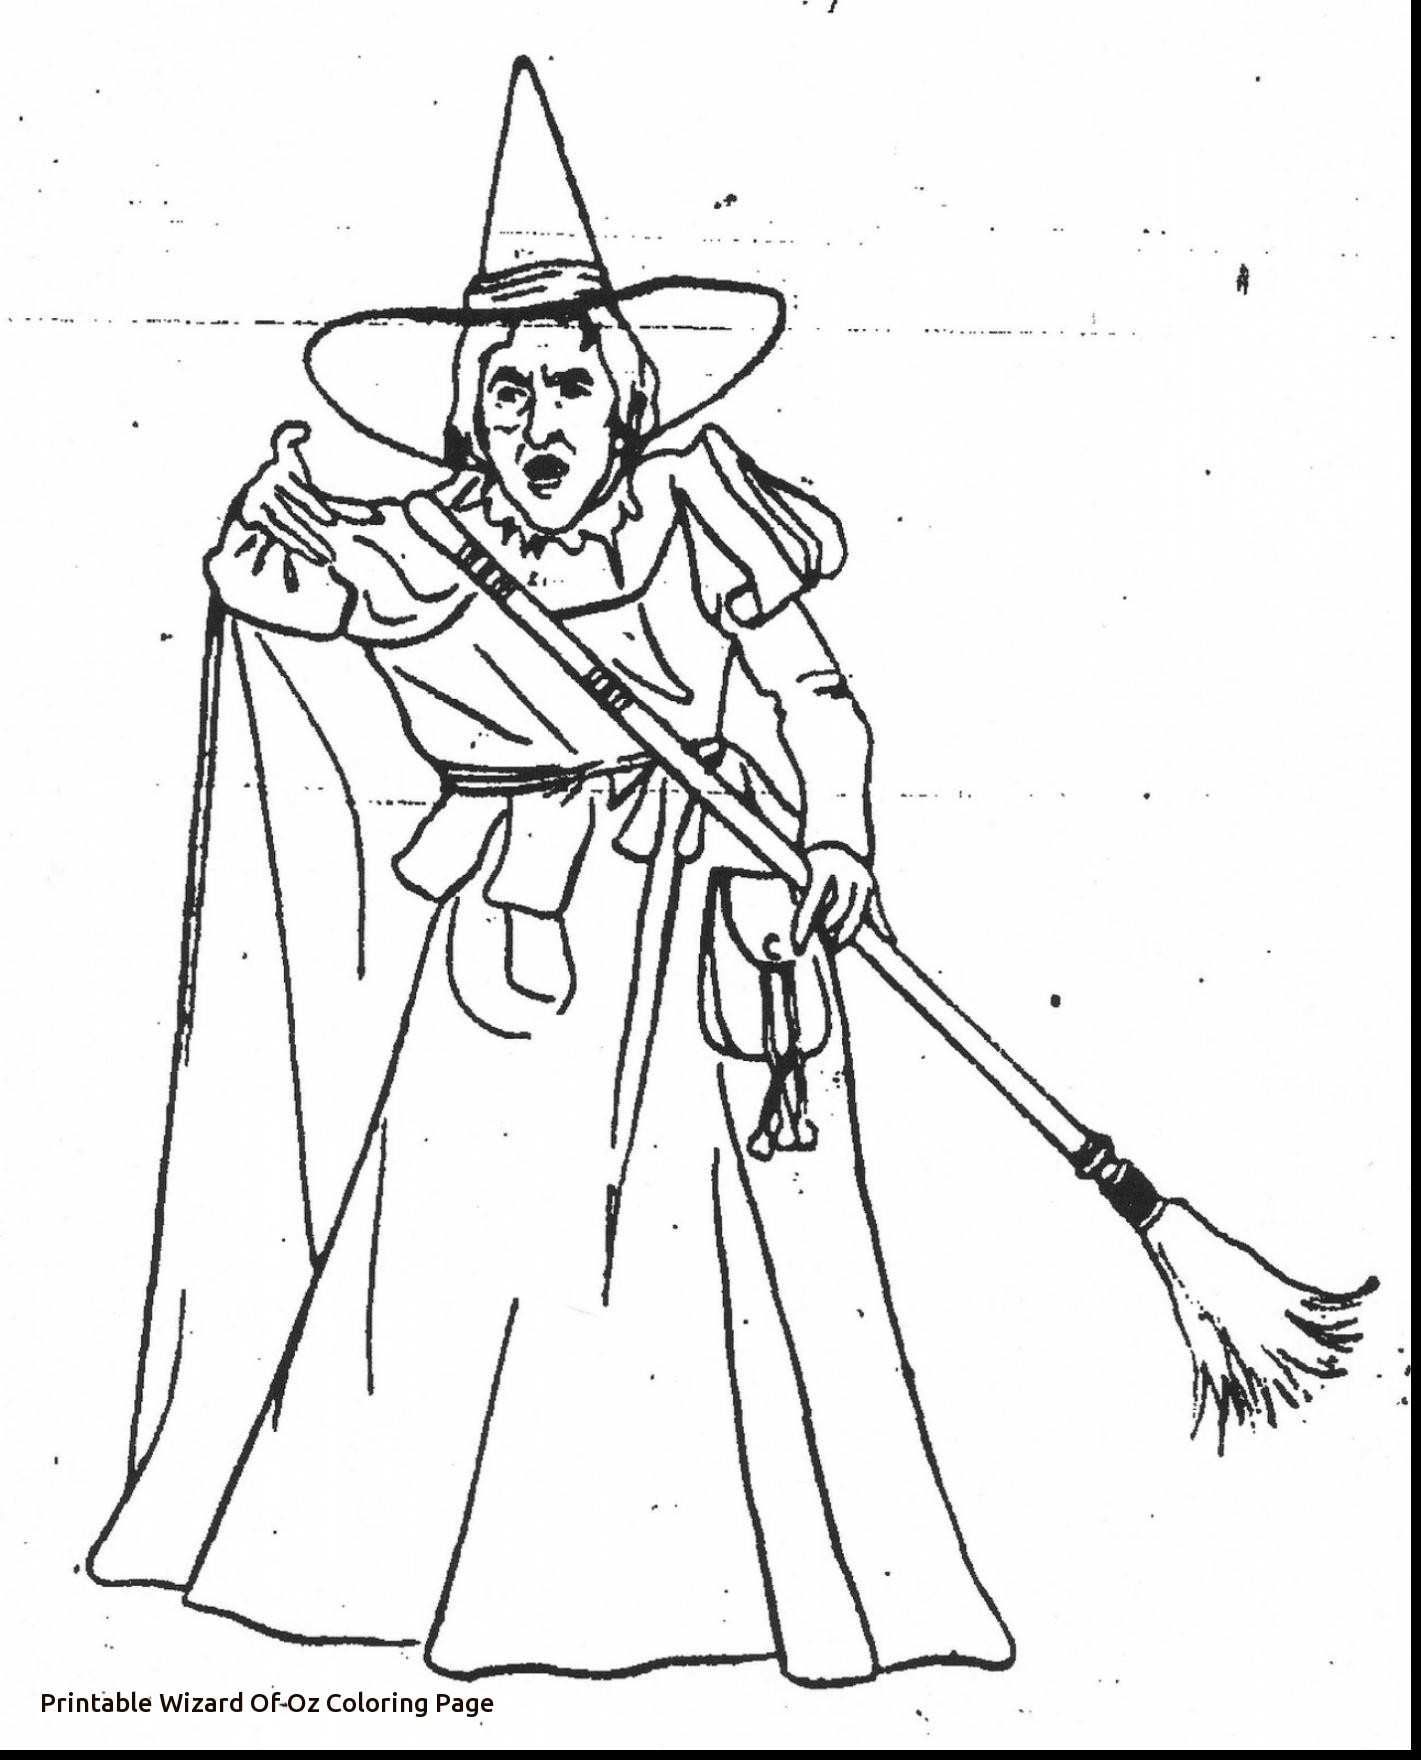 Wizard Showing Magic Wand Effect Coloring Page | 1760x1421